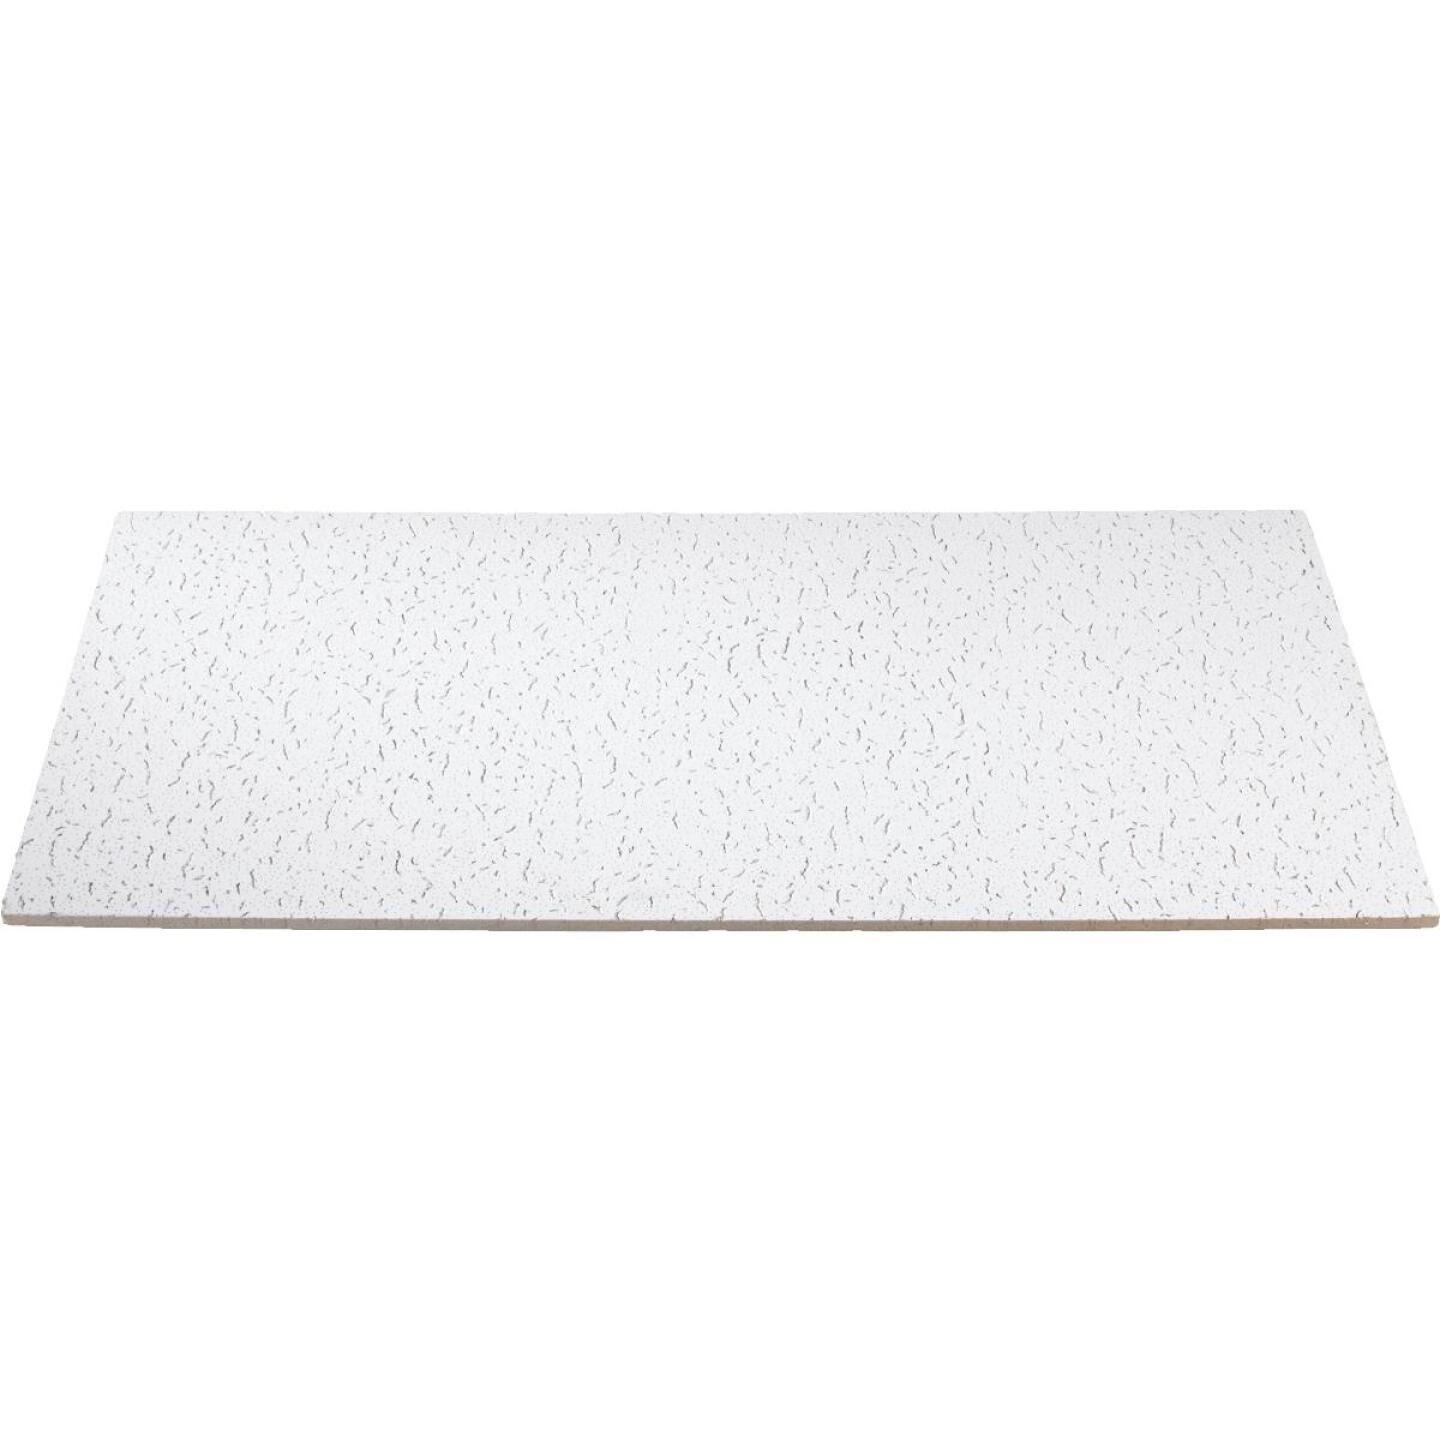 Fifth Avenue 2 Ft. x 4 Ft. White Mineral Fiber Square Edge Ceiling Tile (8-Count) Image 3